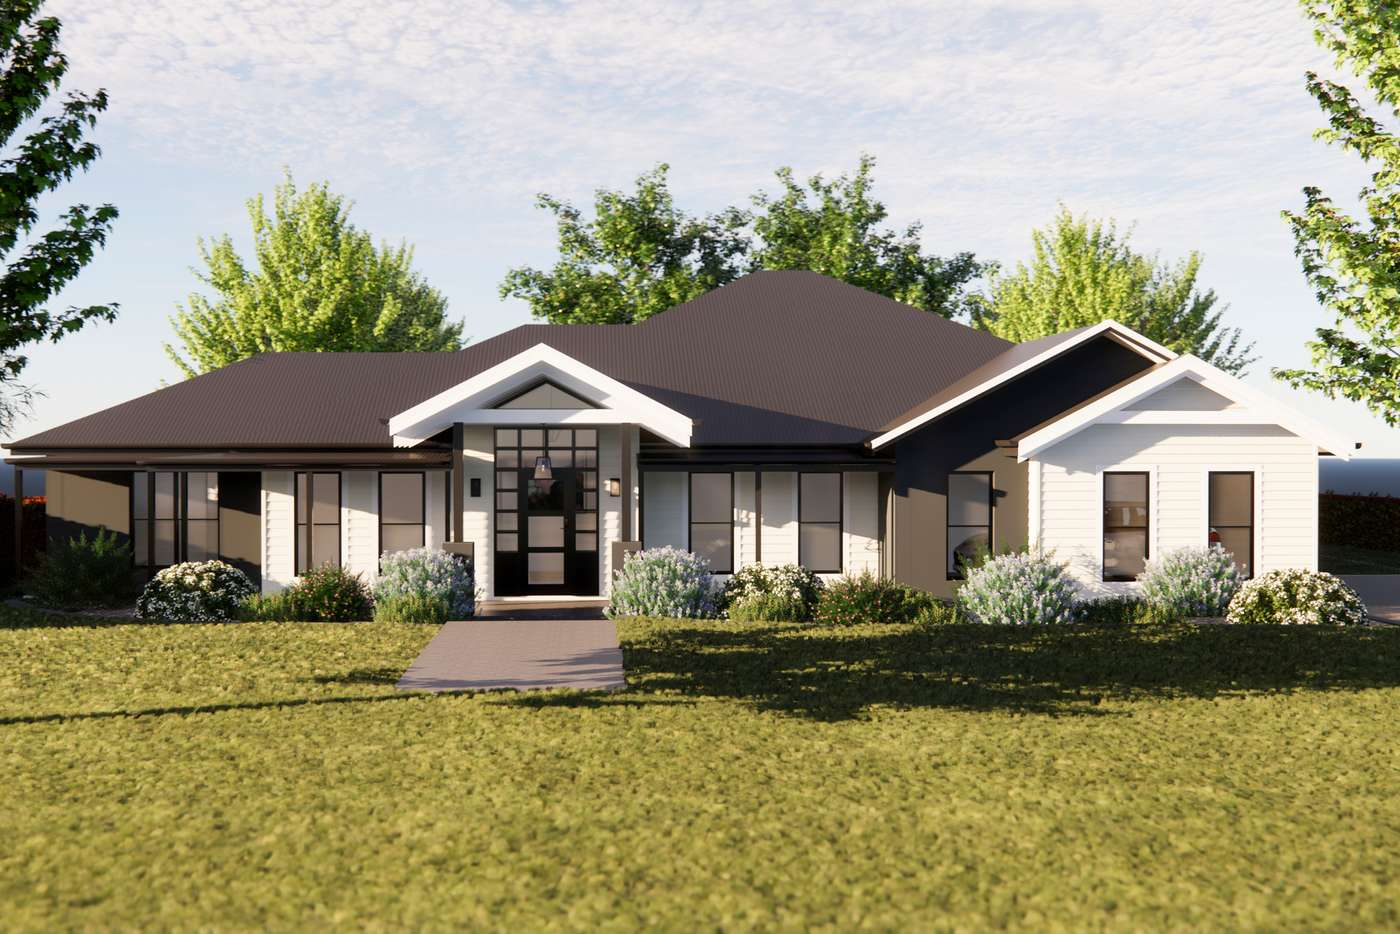 Main view of Homely house listing, 16 Wurth Drive, Mudgee NSW 2850